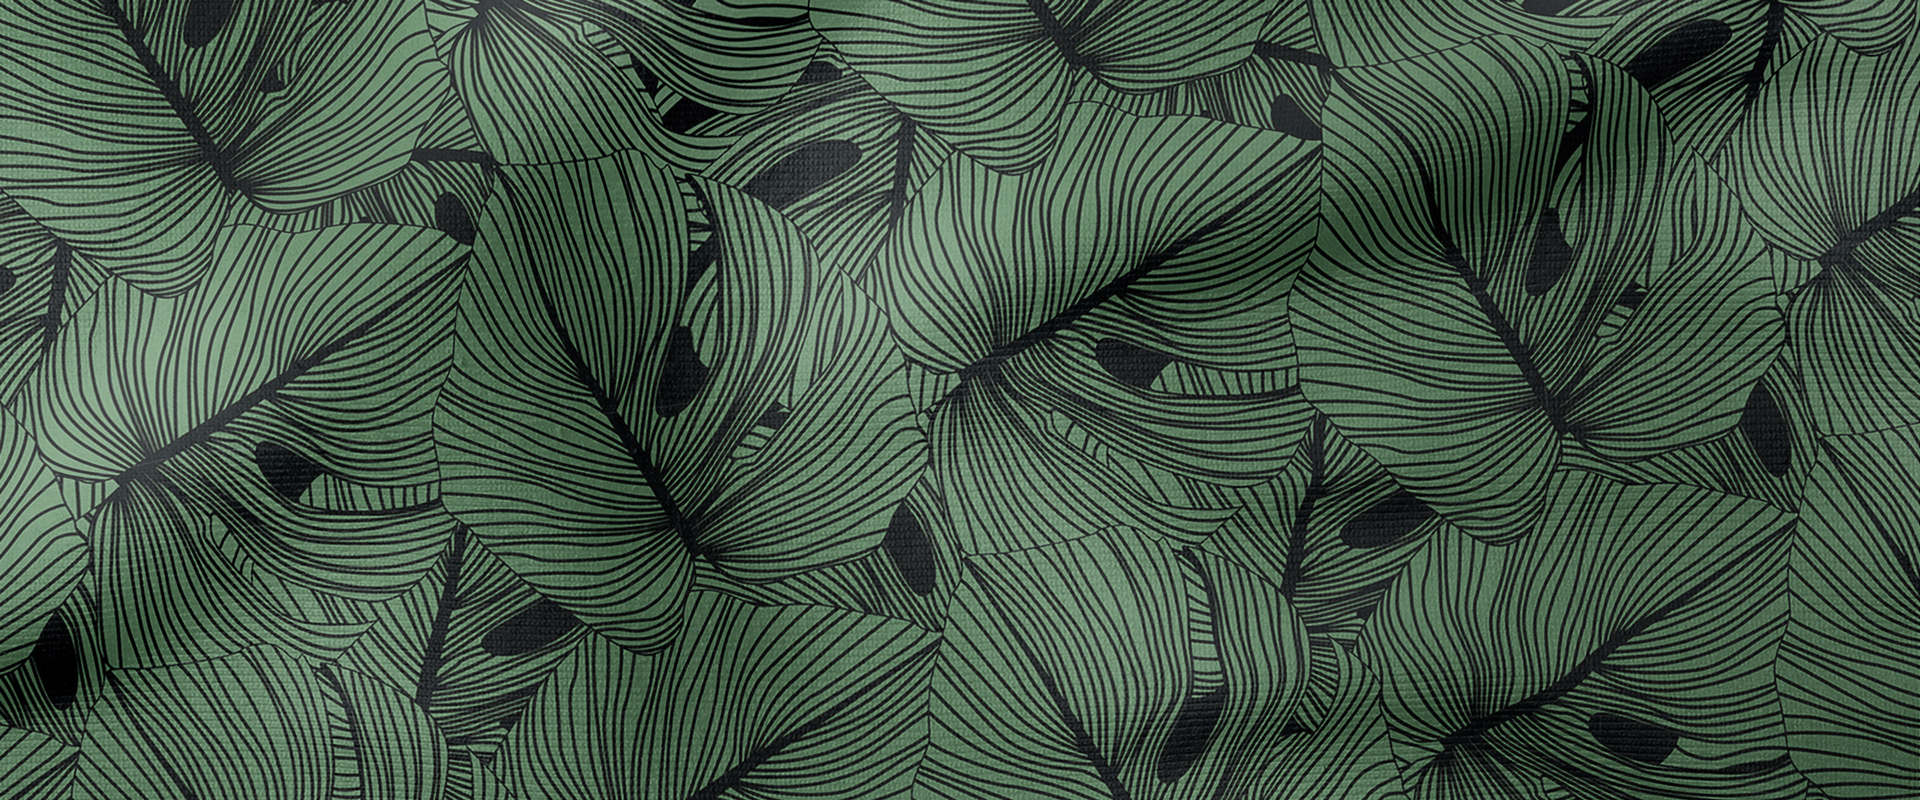 Hello Sticky - Shop - Peel & Stick Removable Wallpaper - Green Wallpaper - Collection Header